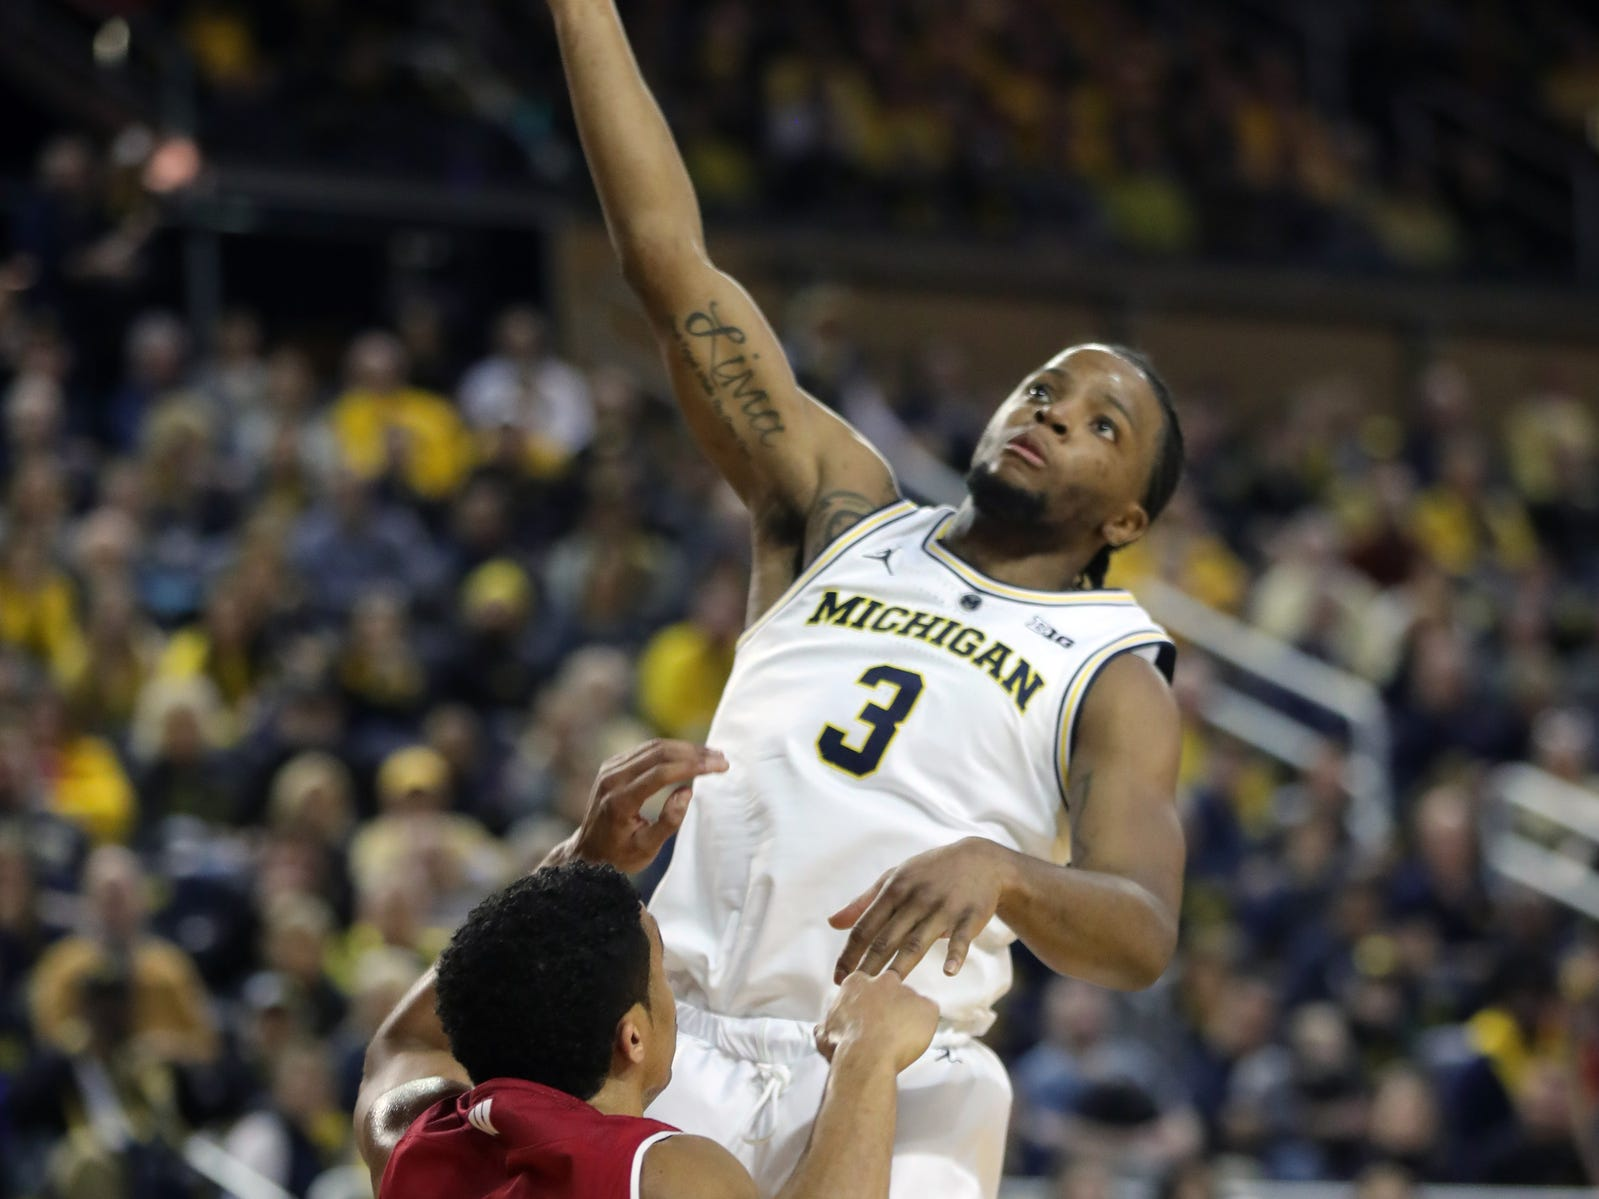 Michigan guard Zavier Simpson scores against Wisconsin guard D'Mitrik Trice during the first half Saturday, Feb. 9, 2019 at Crisler Center in Ann Arbor.